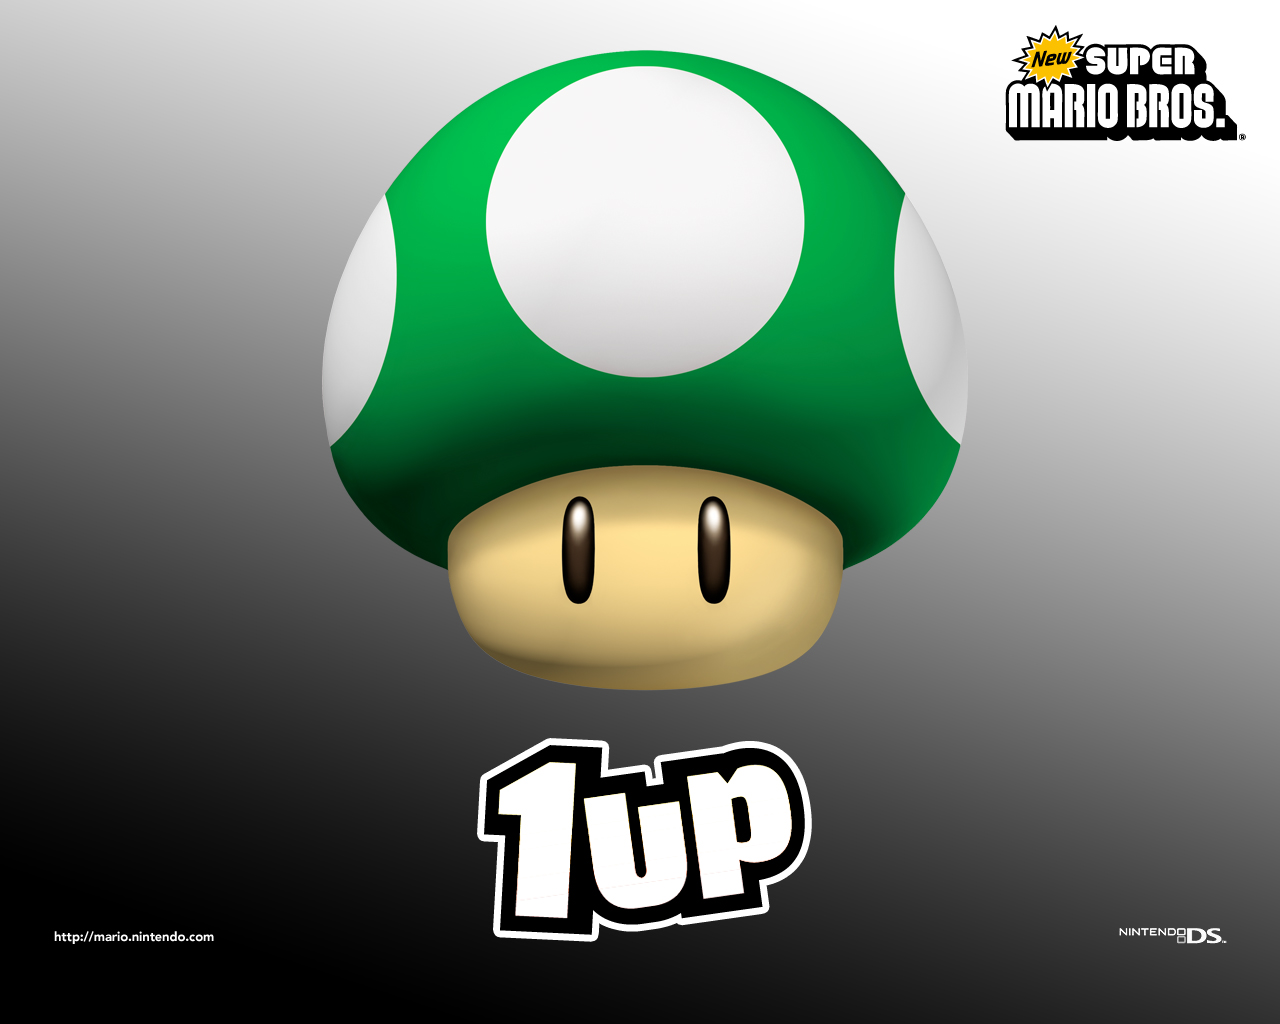 http://4.bp.blogspot.com/-8GSVfycQ5nE/TsOHCc9aabI/AAAAAAAAAPQ/uOxaF0xp63M/s1600/new-super-mario-bros-wallpaper-1up-mushroom.jpg